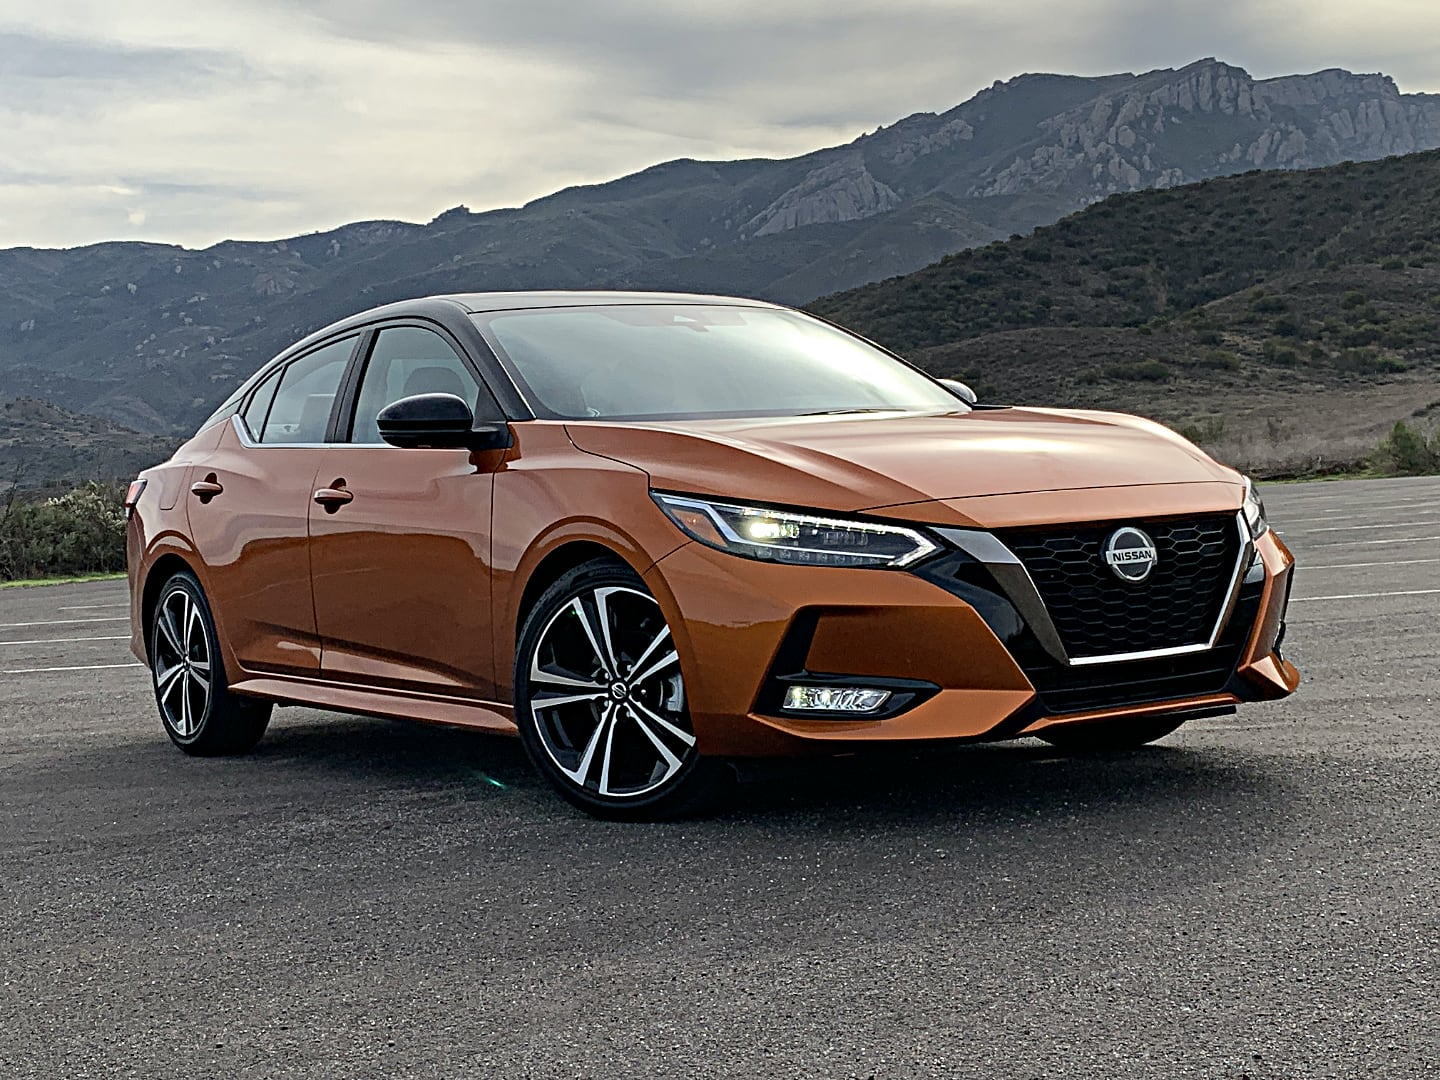 2020 Nissan Sentra Ratings